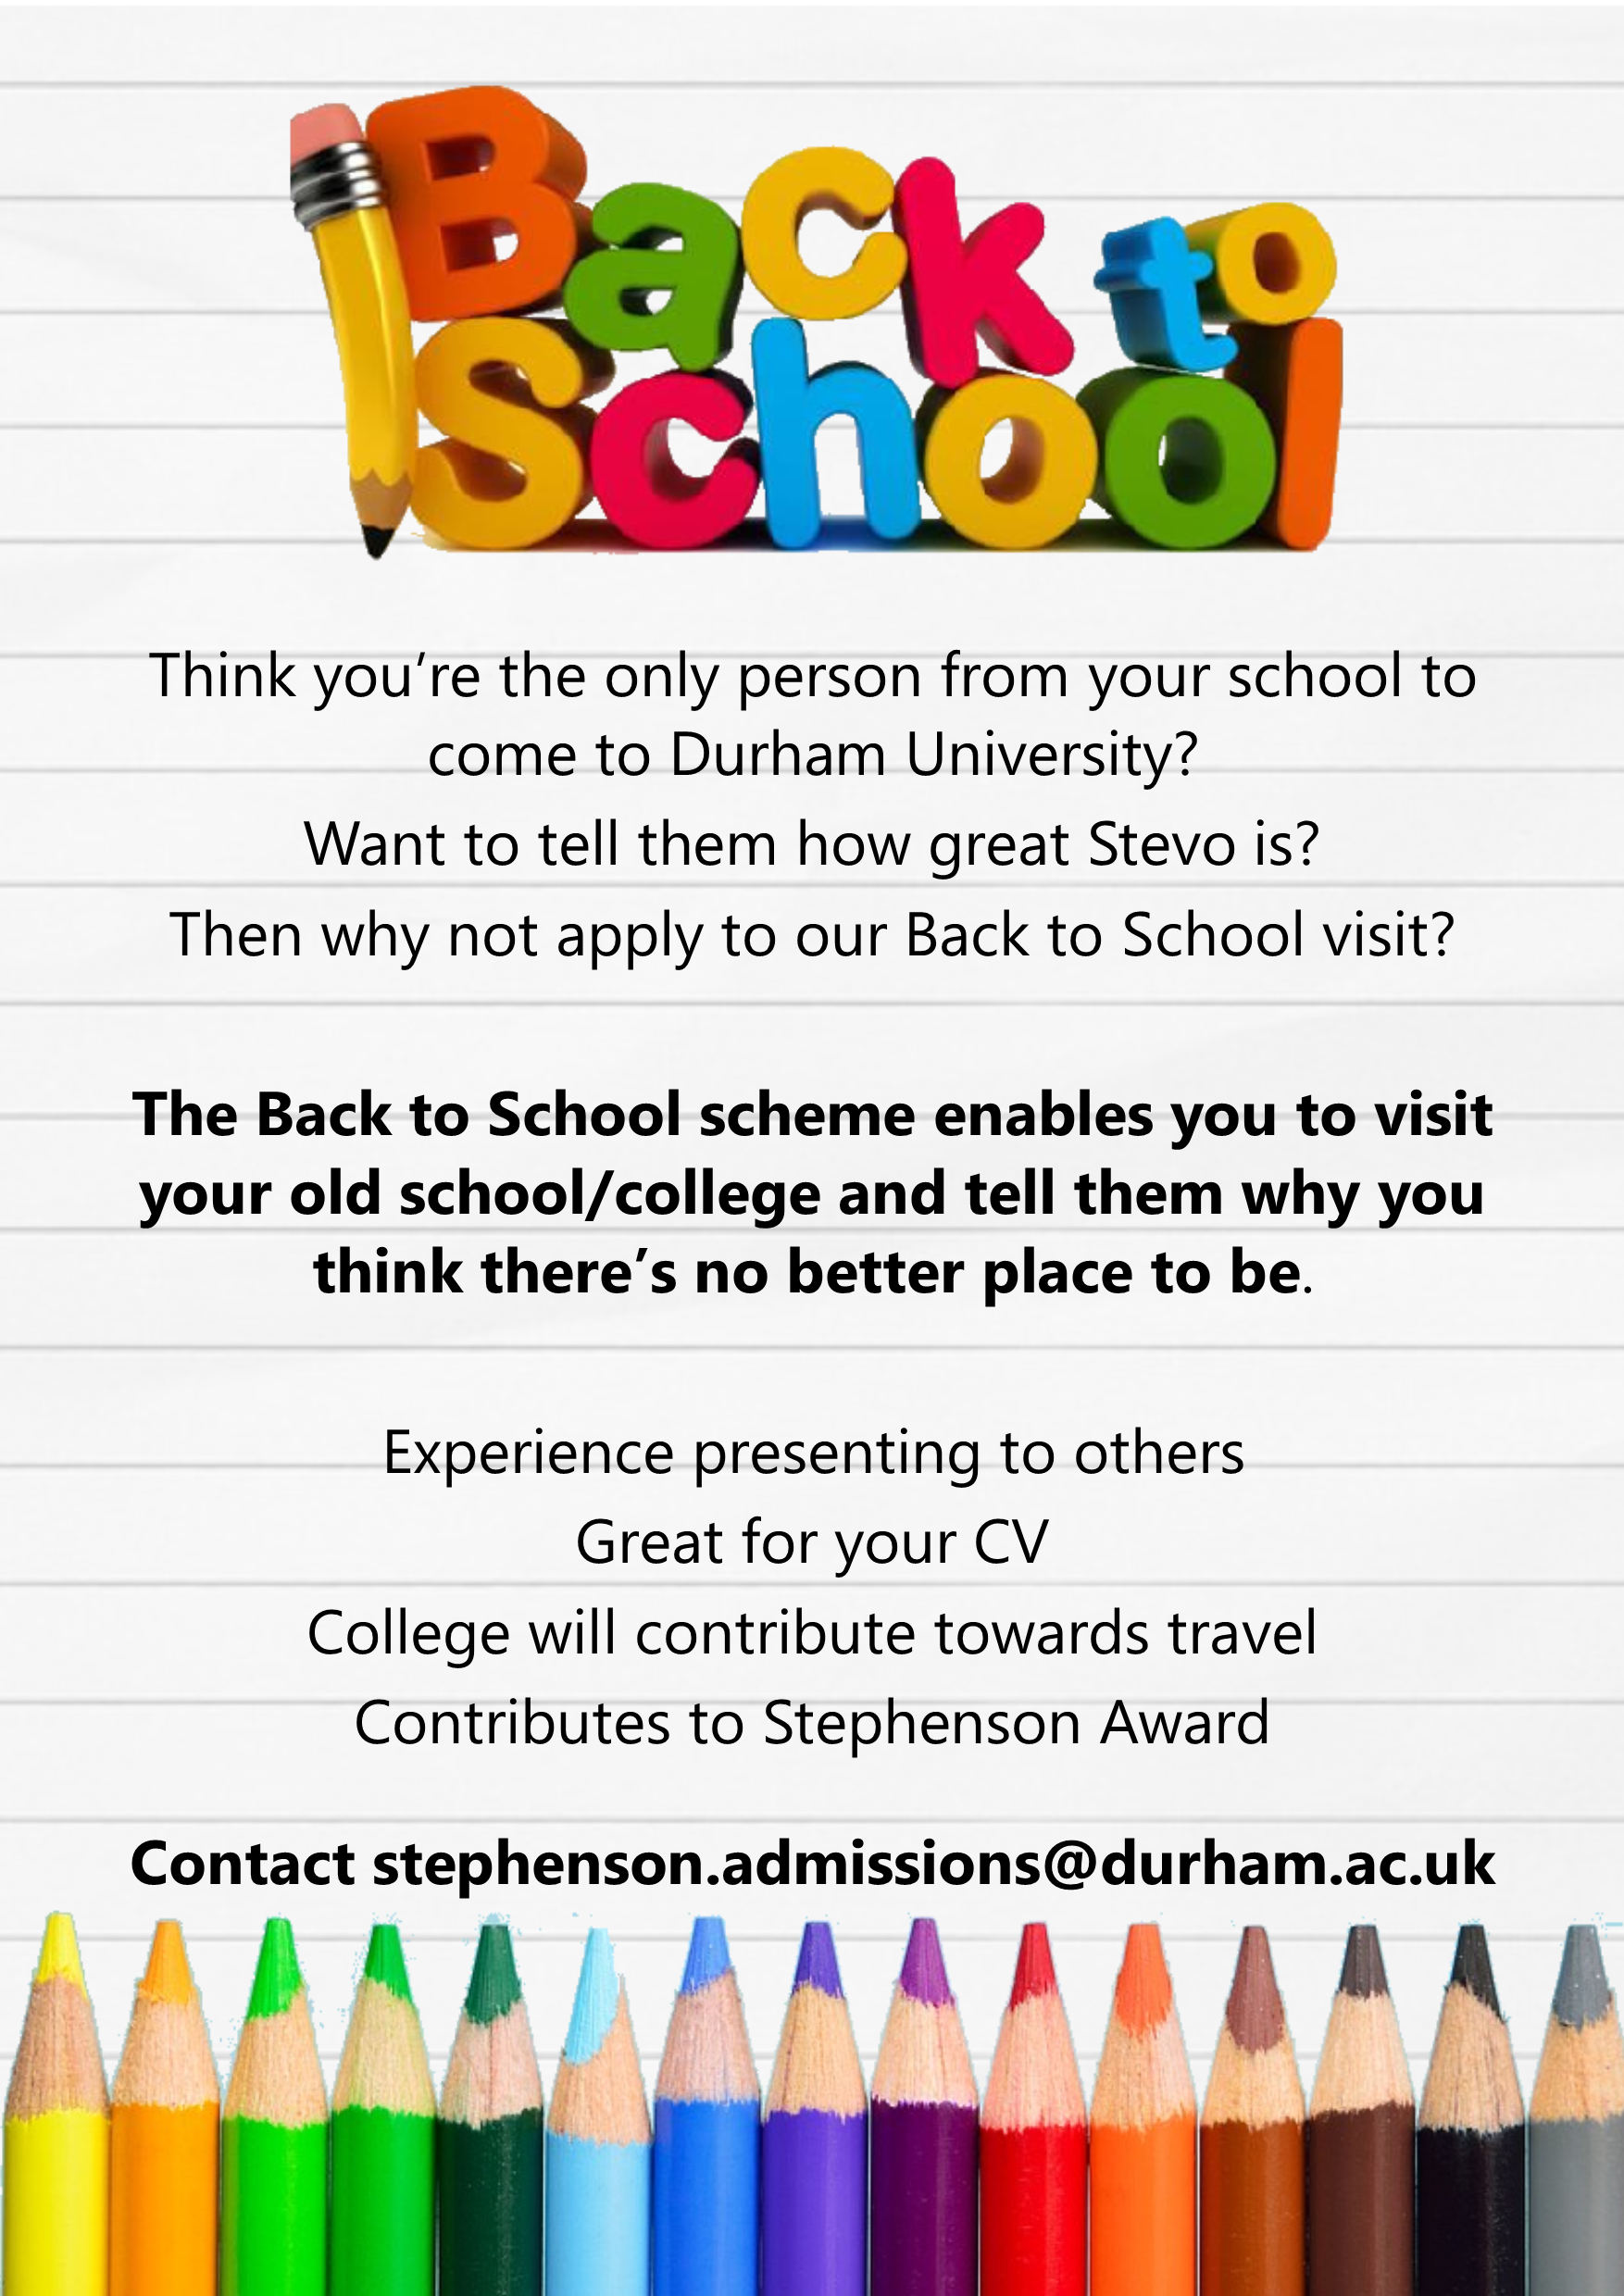 Think you're the only person from your school to come to Durham University? Want to tell them how great Stevo is? Then why not apply to our Back to School visit? The Back to School scheme enables you to visit your old school/college and tell them why yo